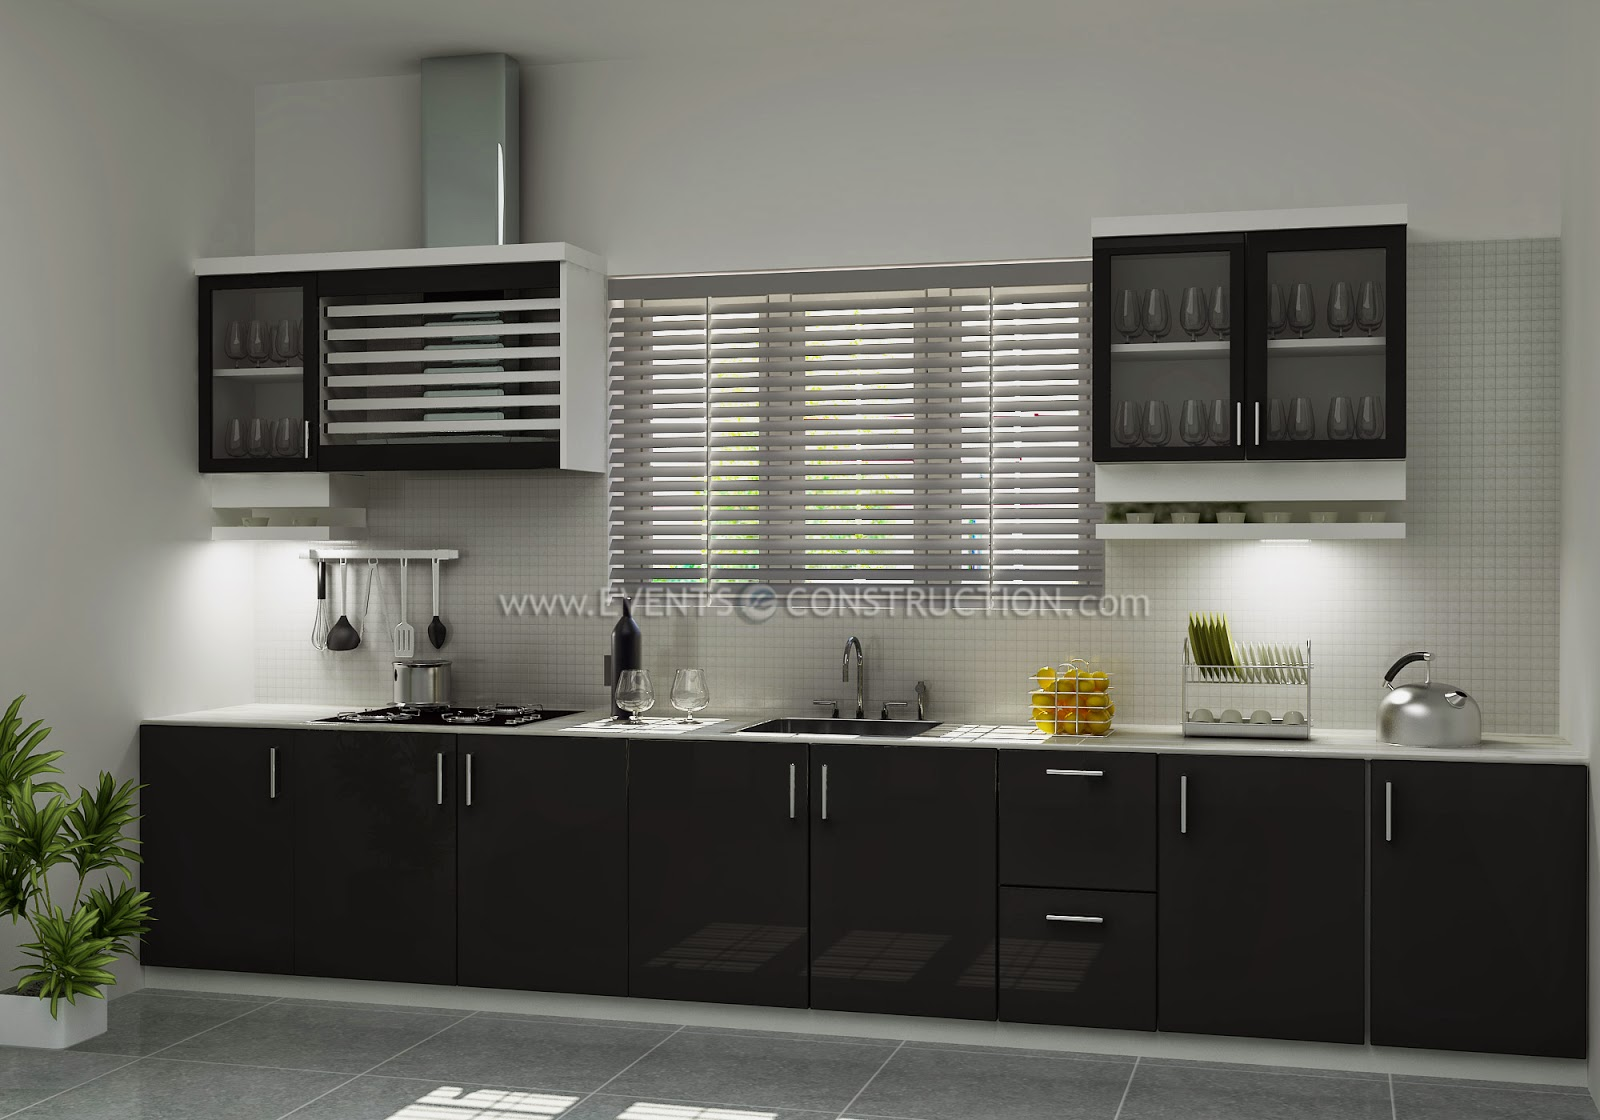 kerala style kitchen design picture. Simple and small Kerala kitchen interior design Evens Construction Pvt Ltd